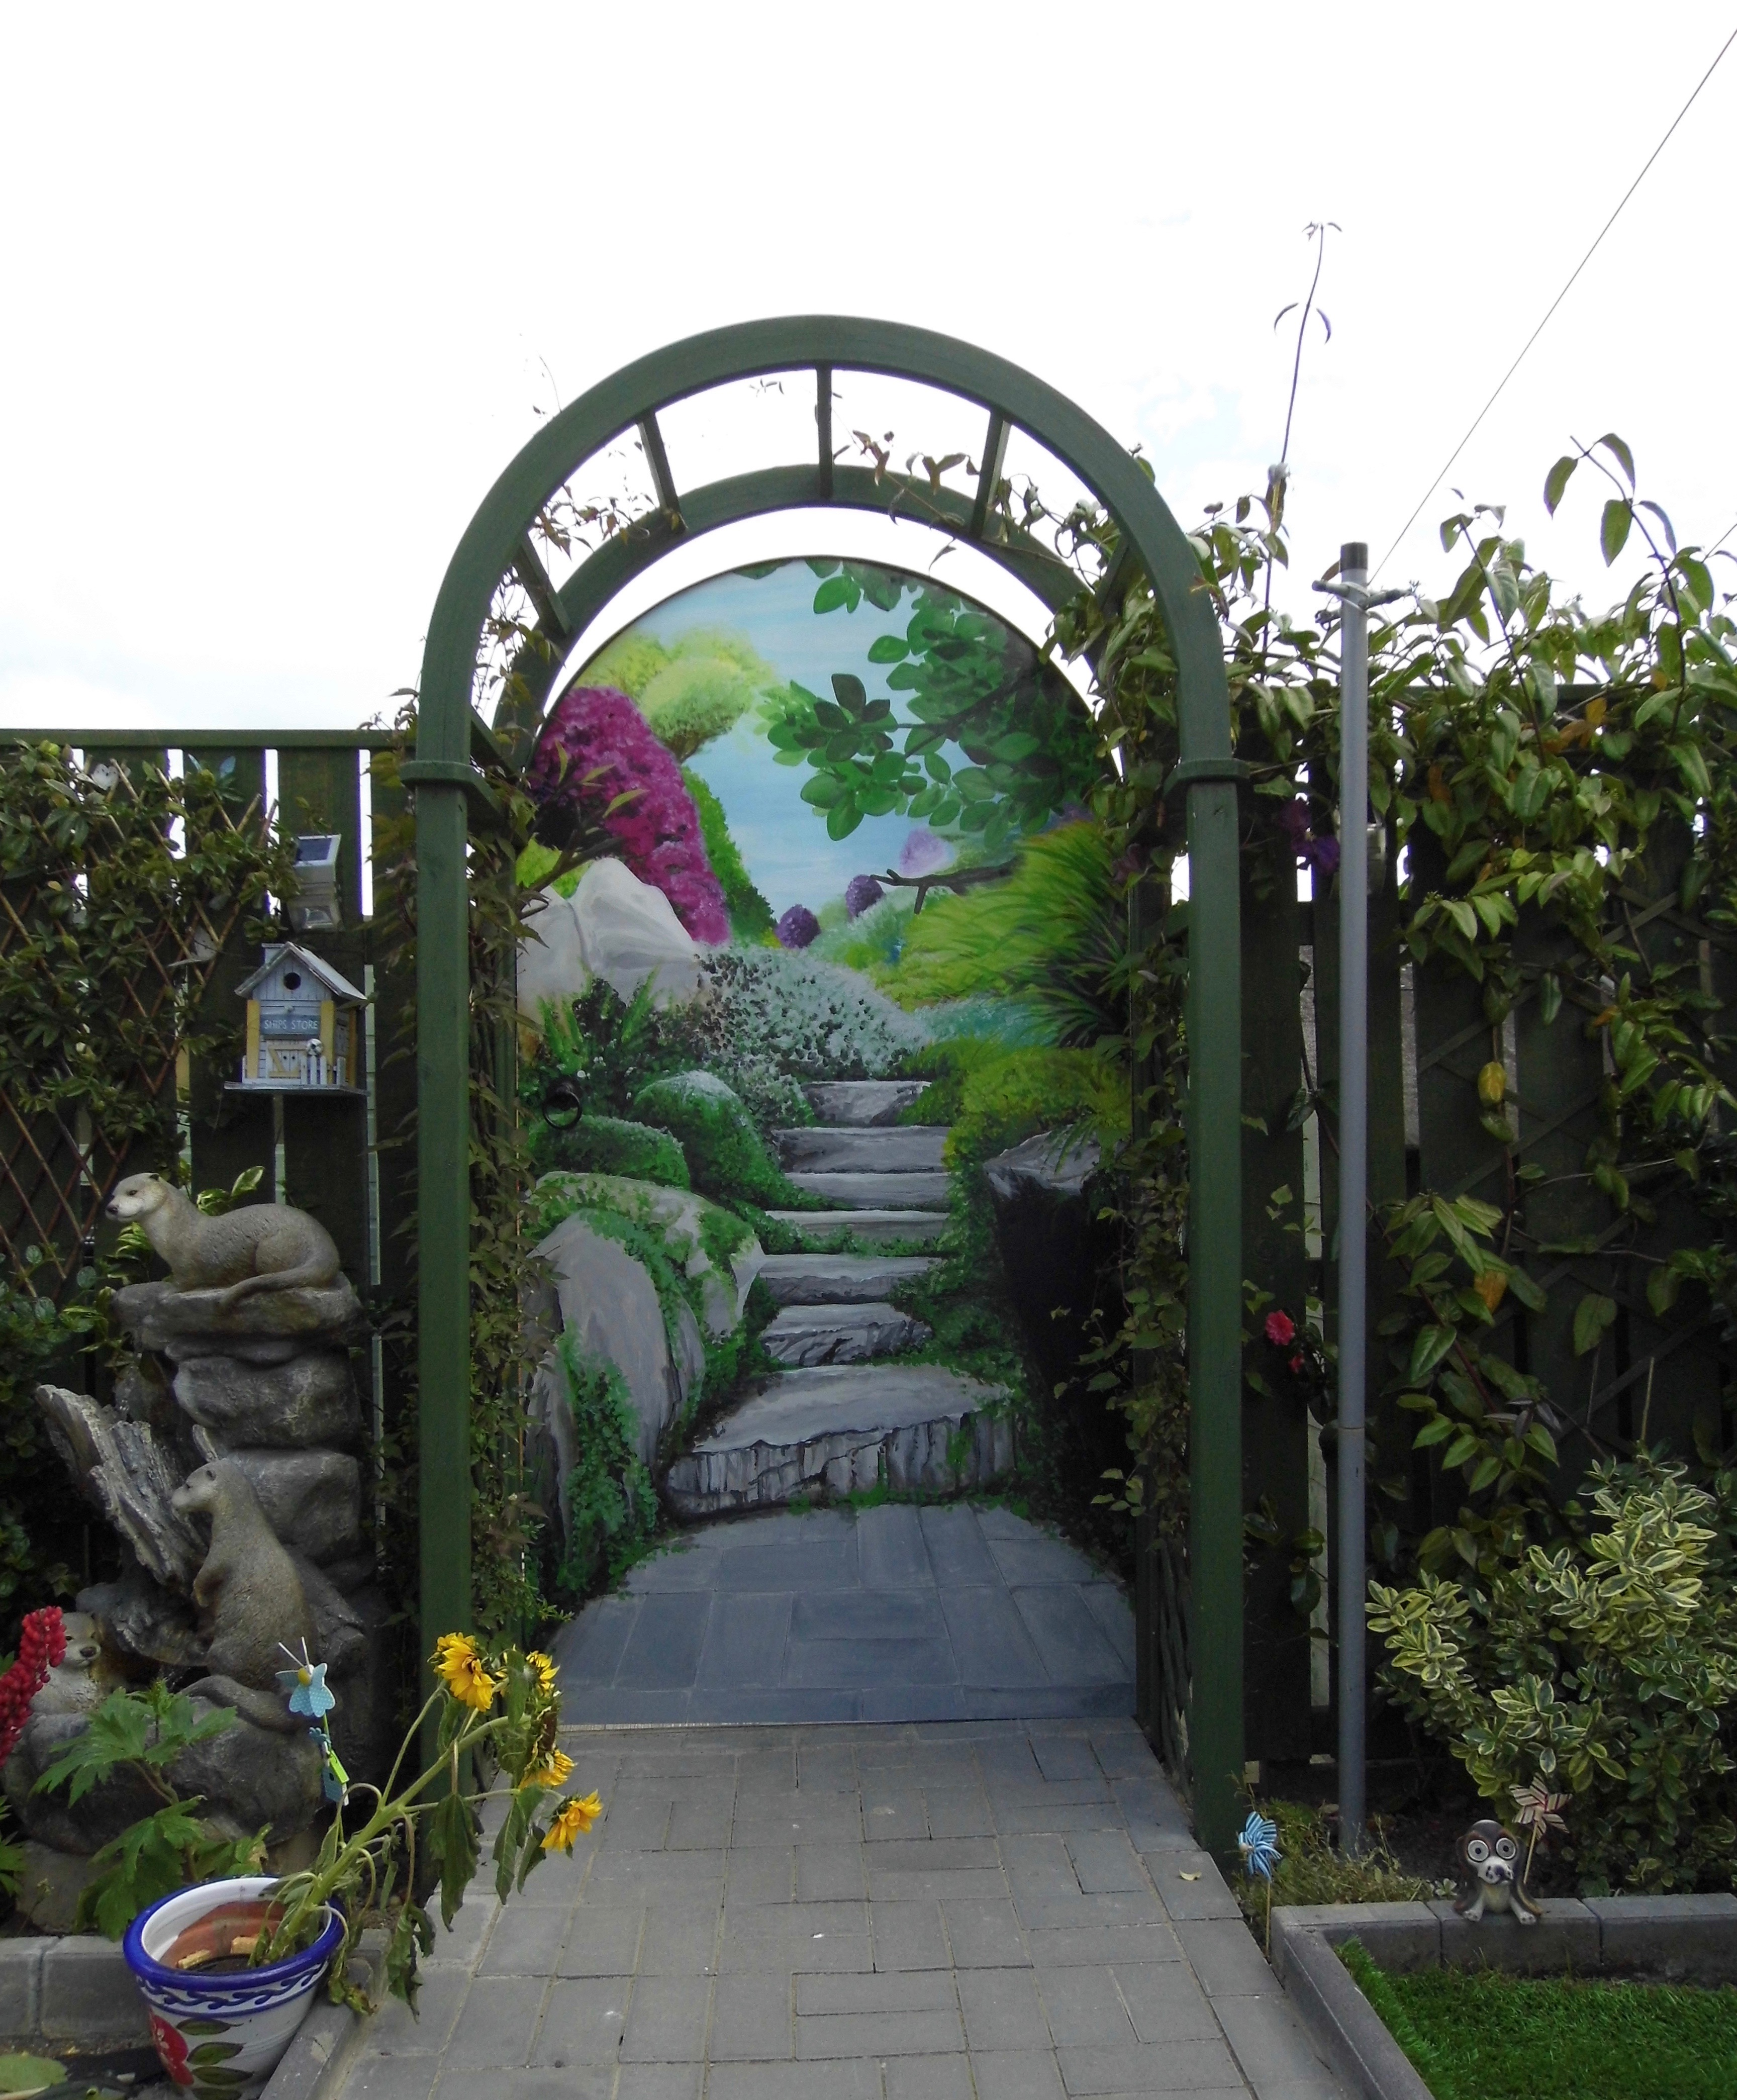 The Gate Outdoors Trompe l'oeil